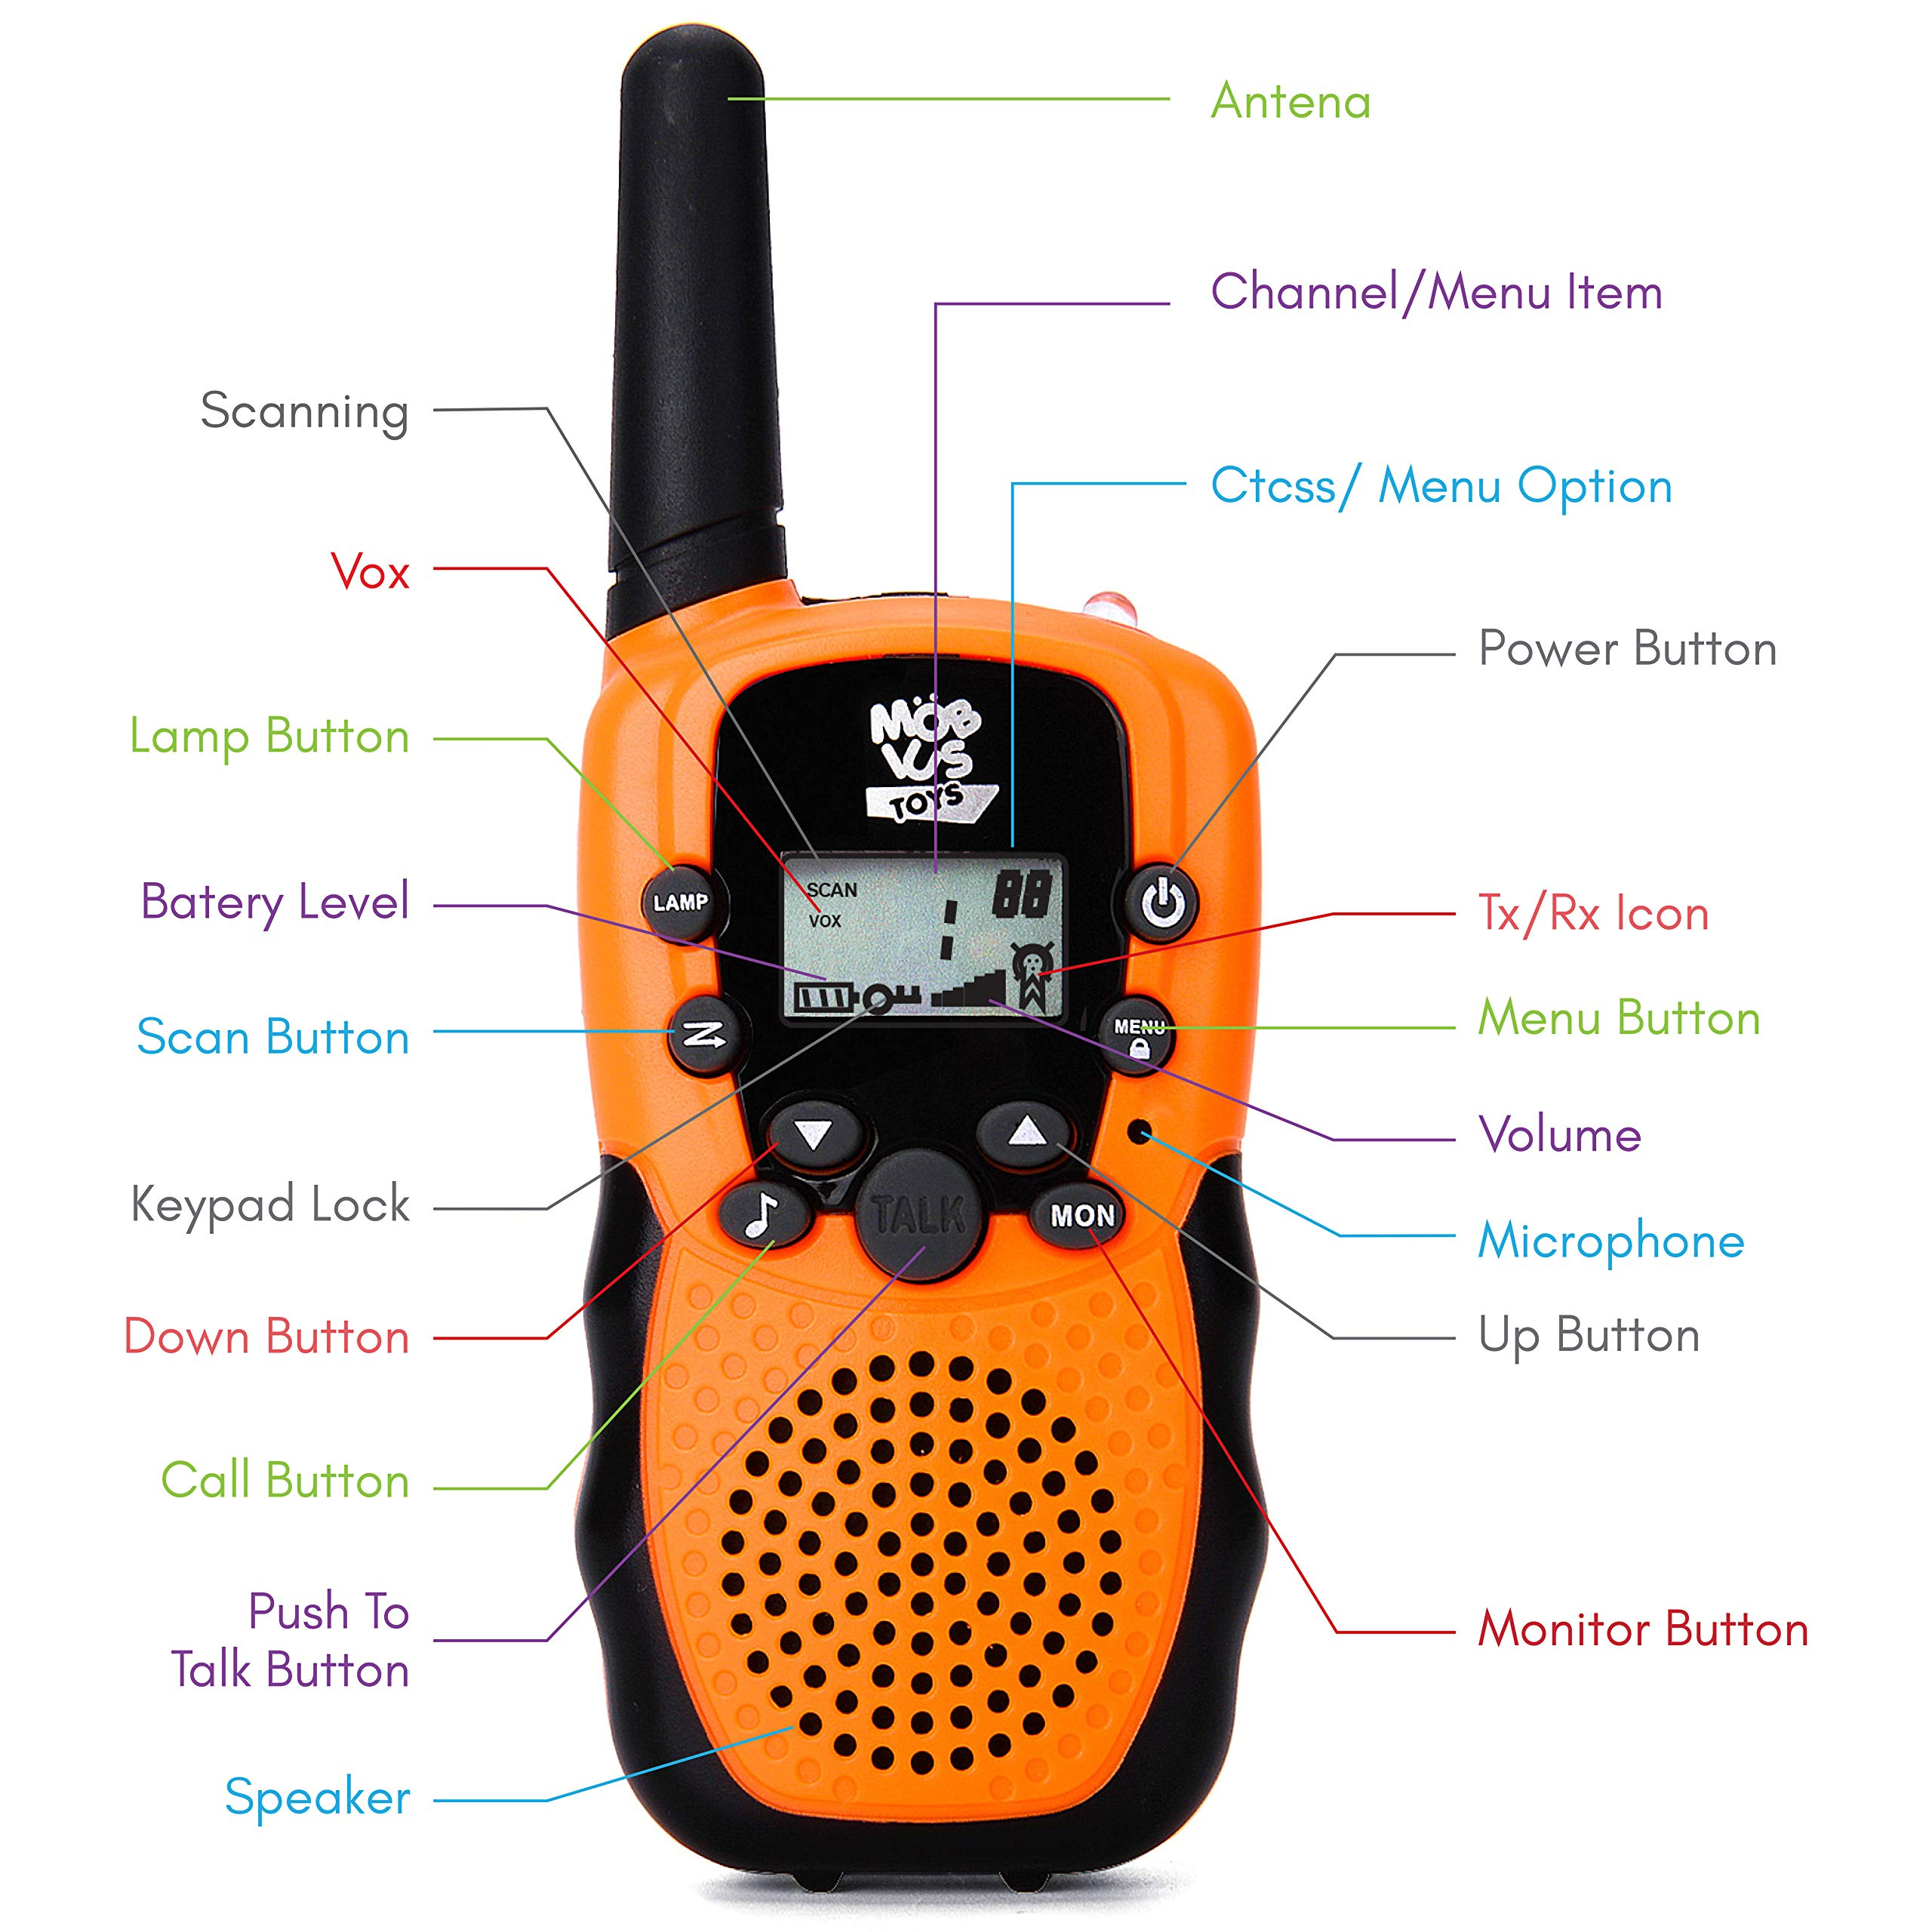 Walkie Talkies for Kids - (Vox Box) Voice Activated Walkie Talkies Toy for Kids, Two Way Radios Pair for Boys & Girls, Limited Edition Color Best Gift Long Range 3+ Miles Children's Walkie Talkie Set by MOBIUS Toys (Image #2)